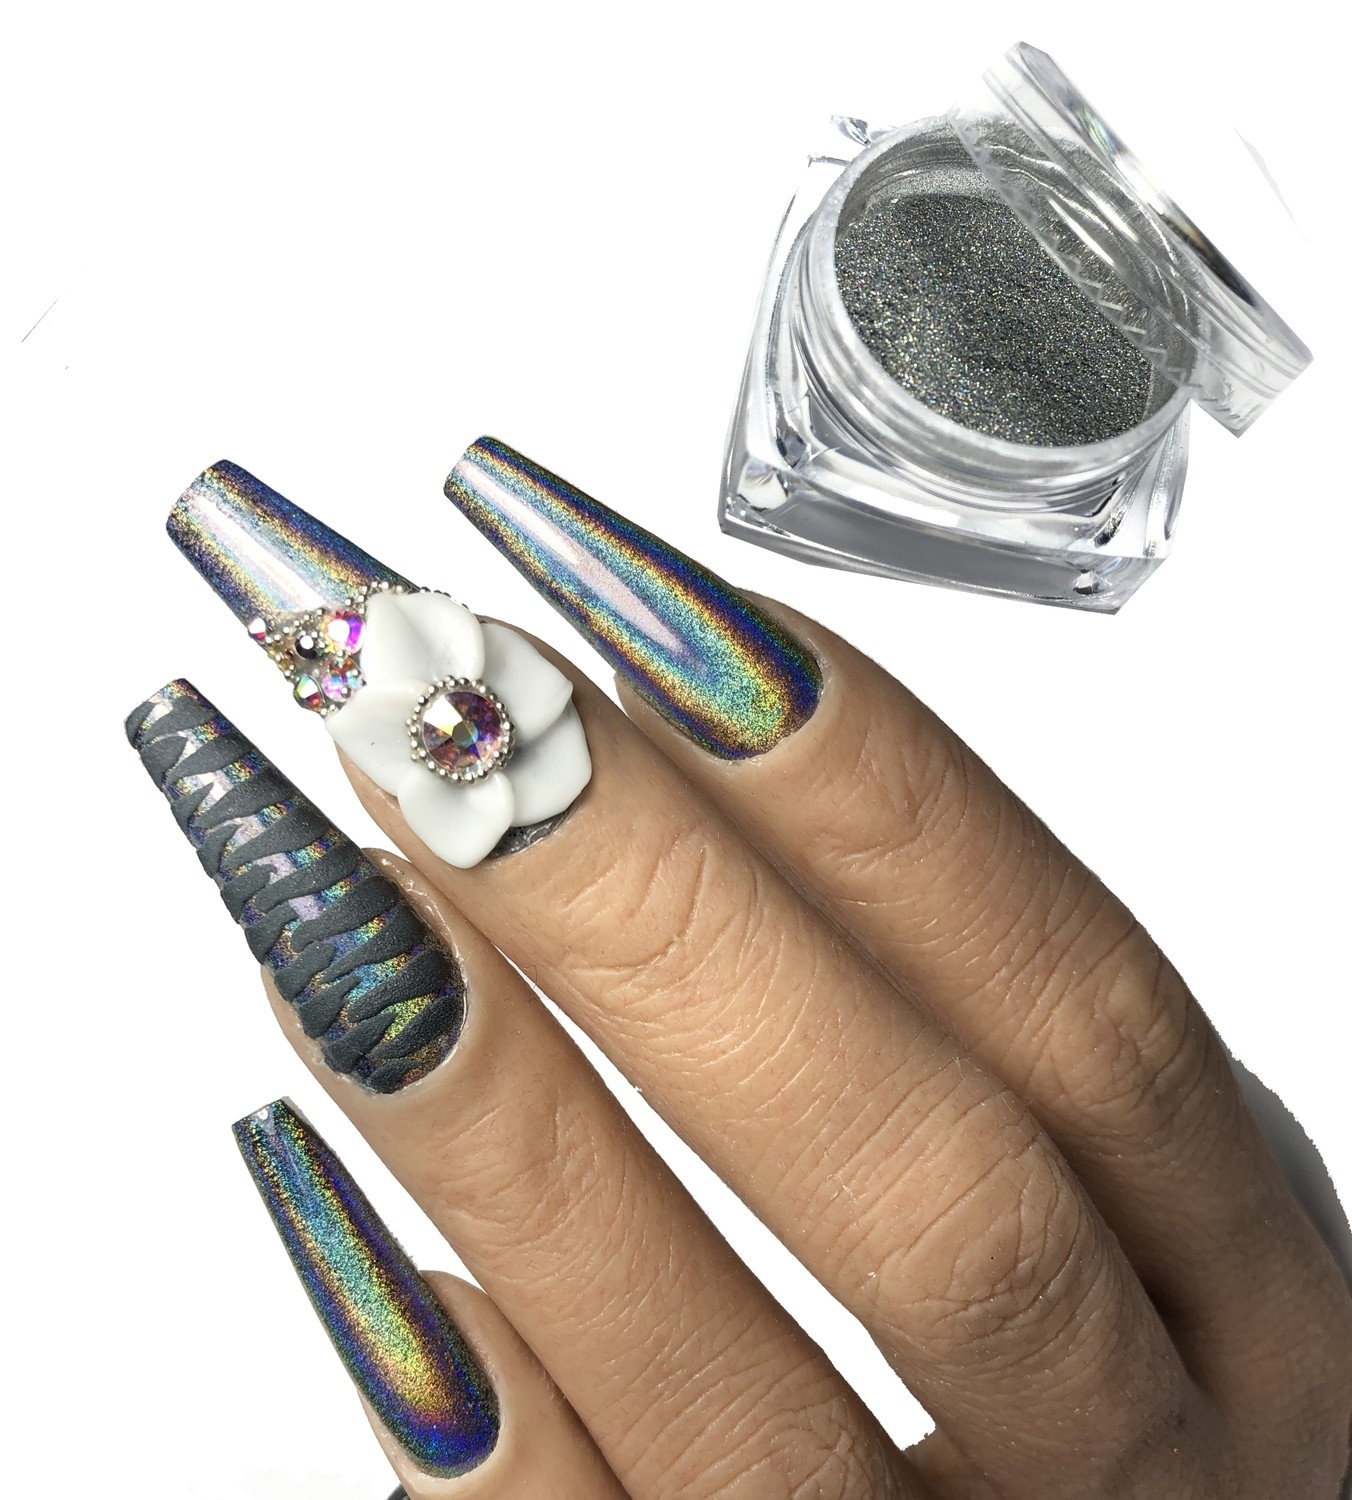 ITEM #106 NEW ELECTRIC HOLO-GLAM 1g. ATTENTION TOP COAT CAN ONLY BE CURED FOR 8-10 SECS BEFORE APPLICATION. PLEASE READ DIRECTIONS.